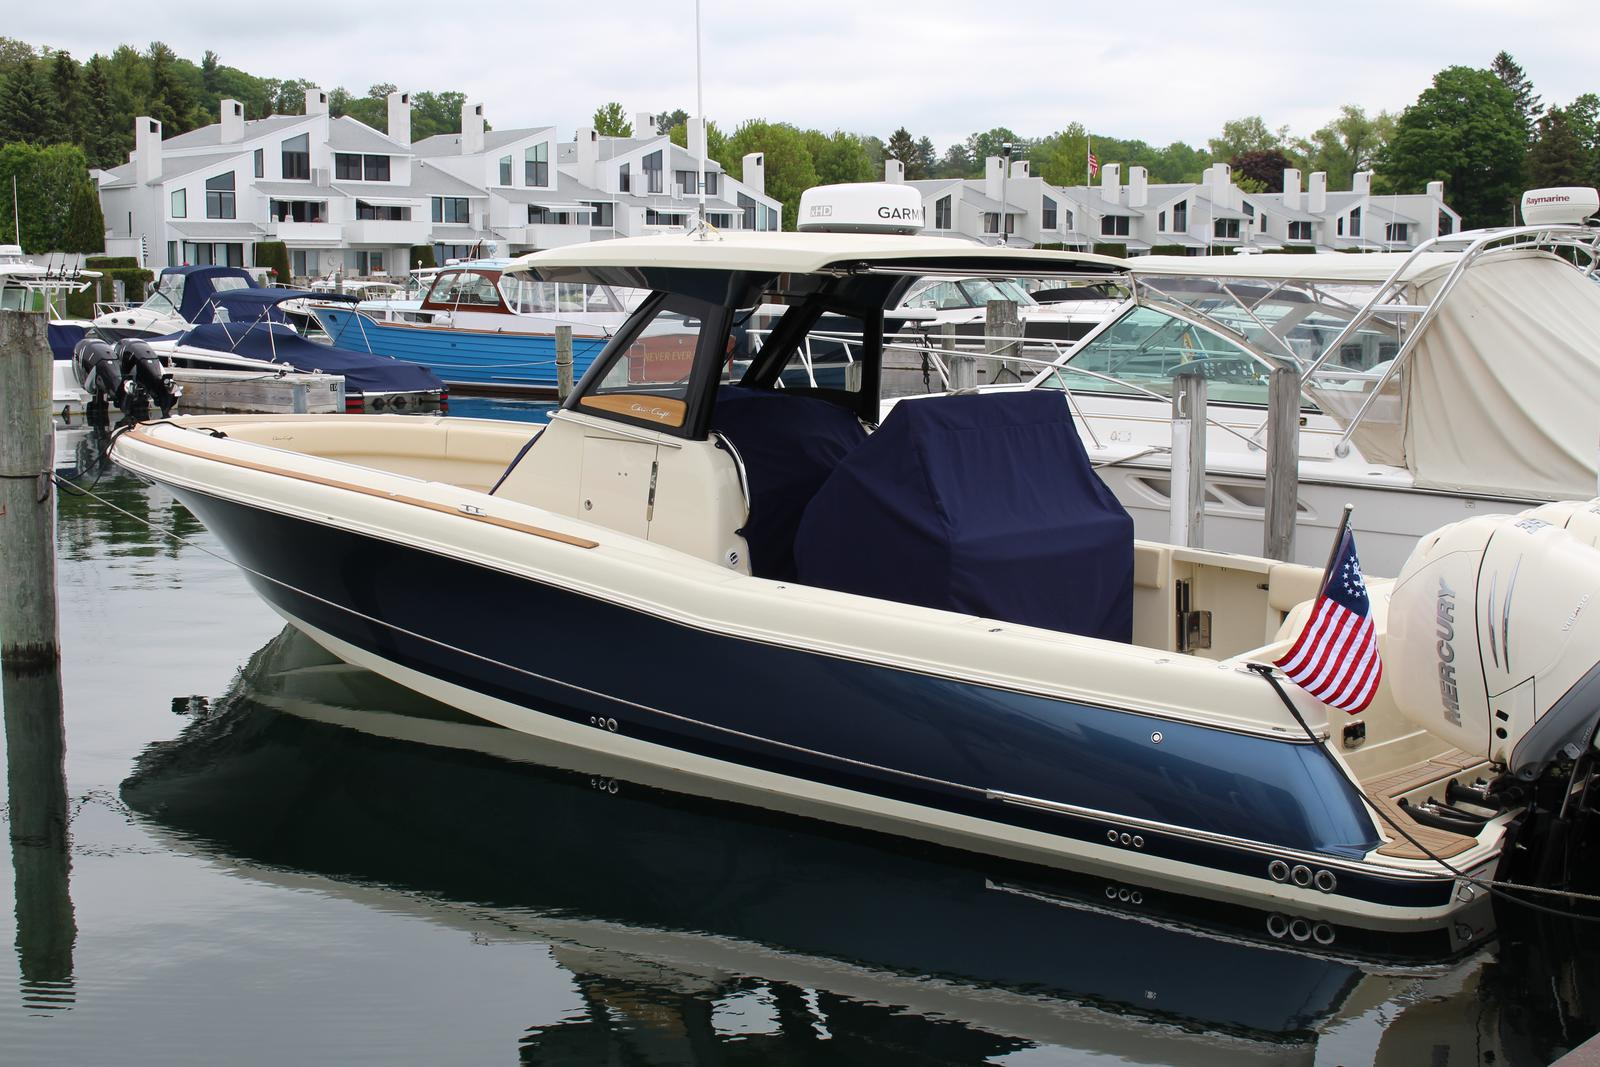 2019 Chris Craft Catalina 34 for sale in Harbor Springs, MI